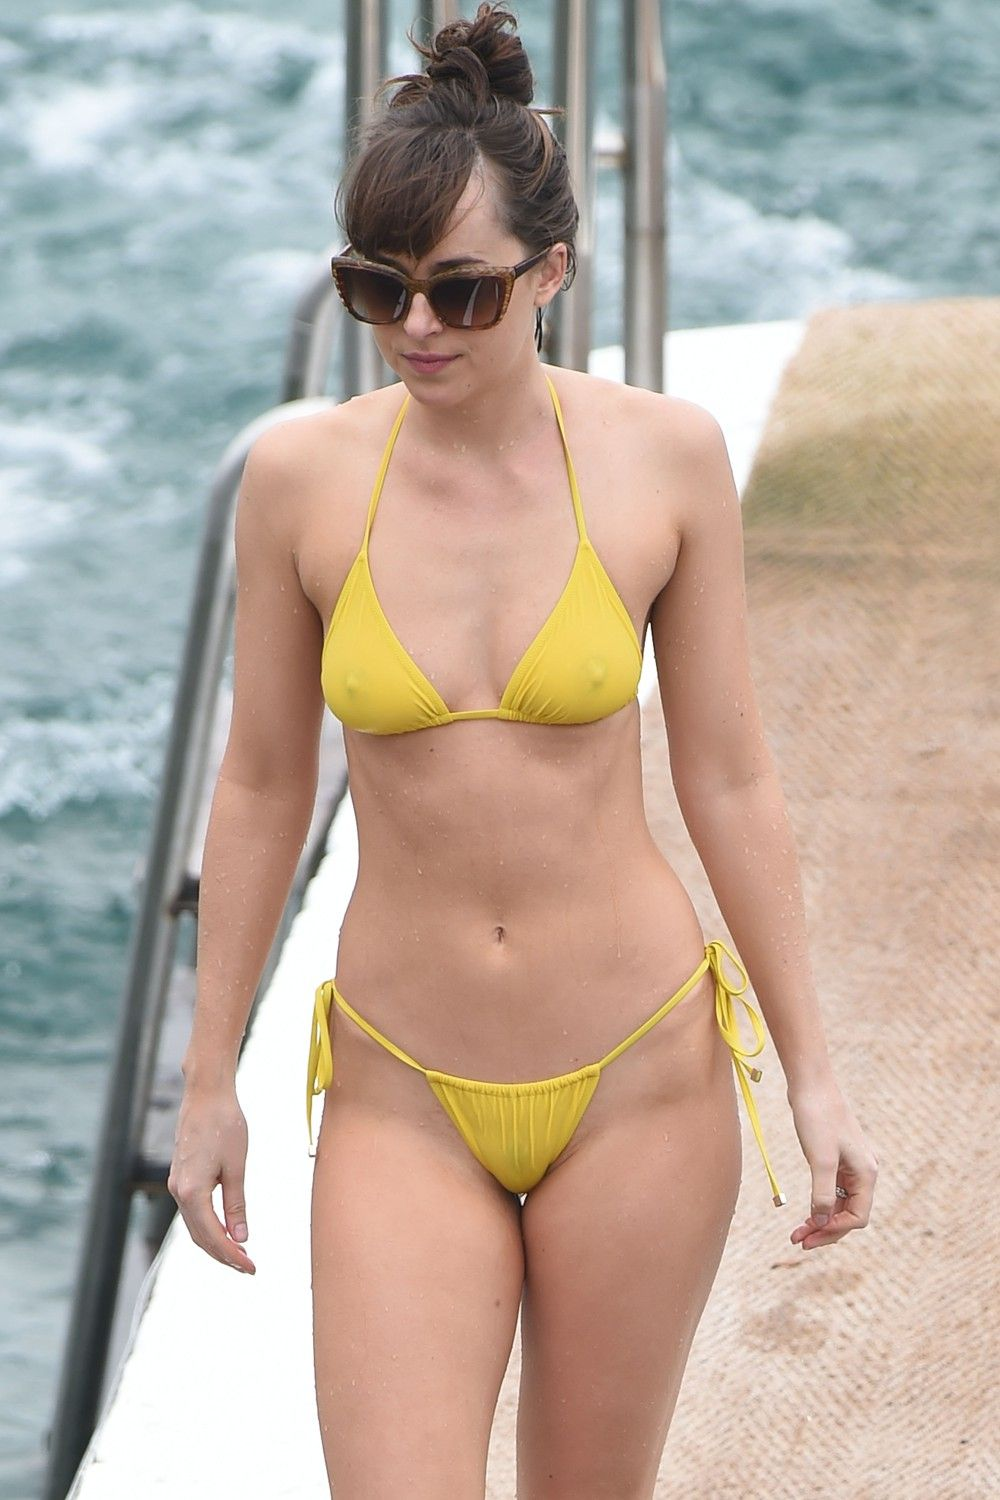 Yellow bikini see through was